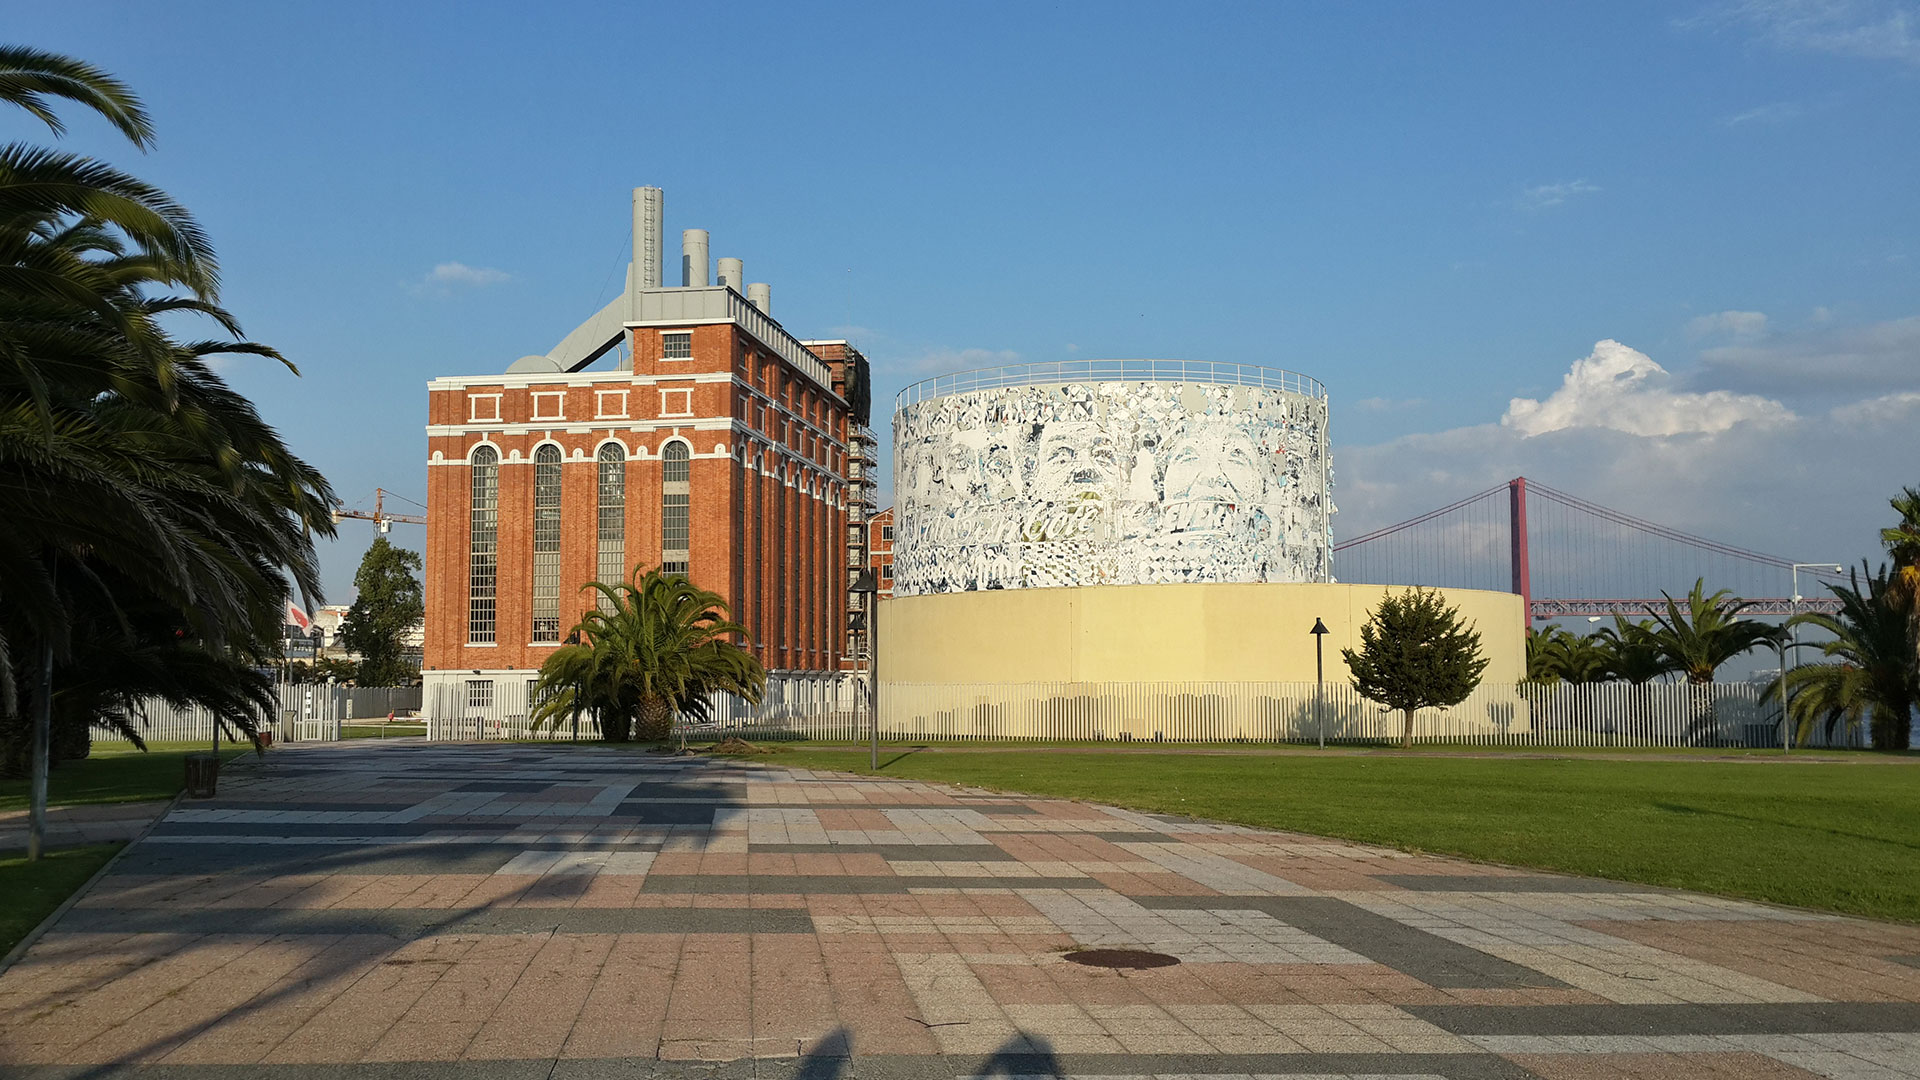 Museum of electricity in Lisbon